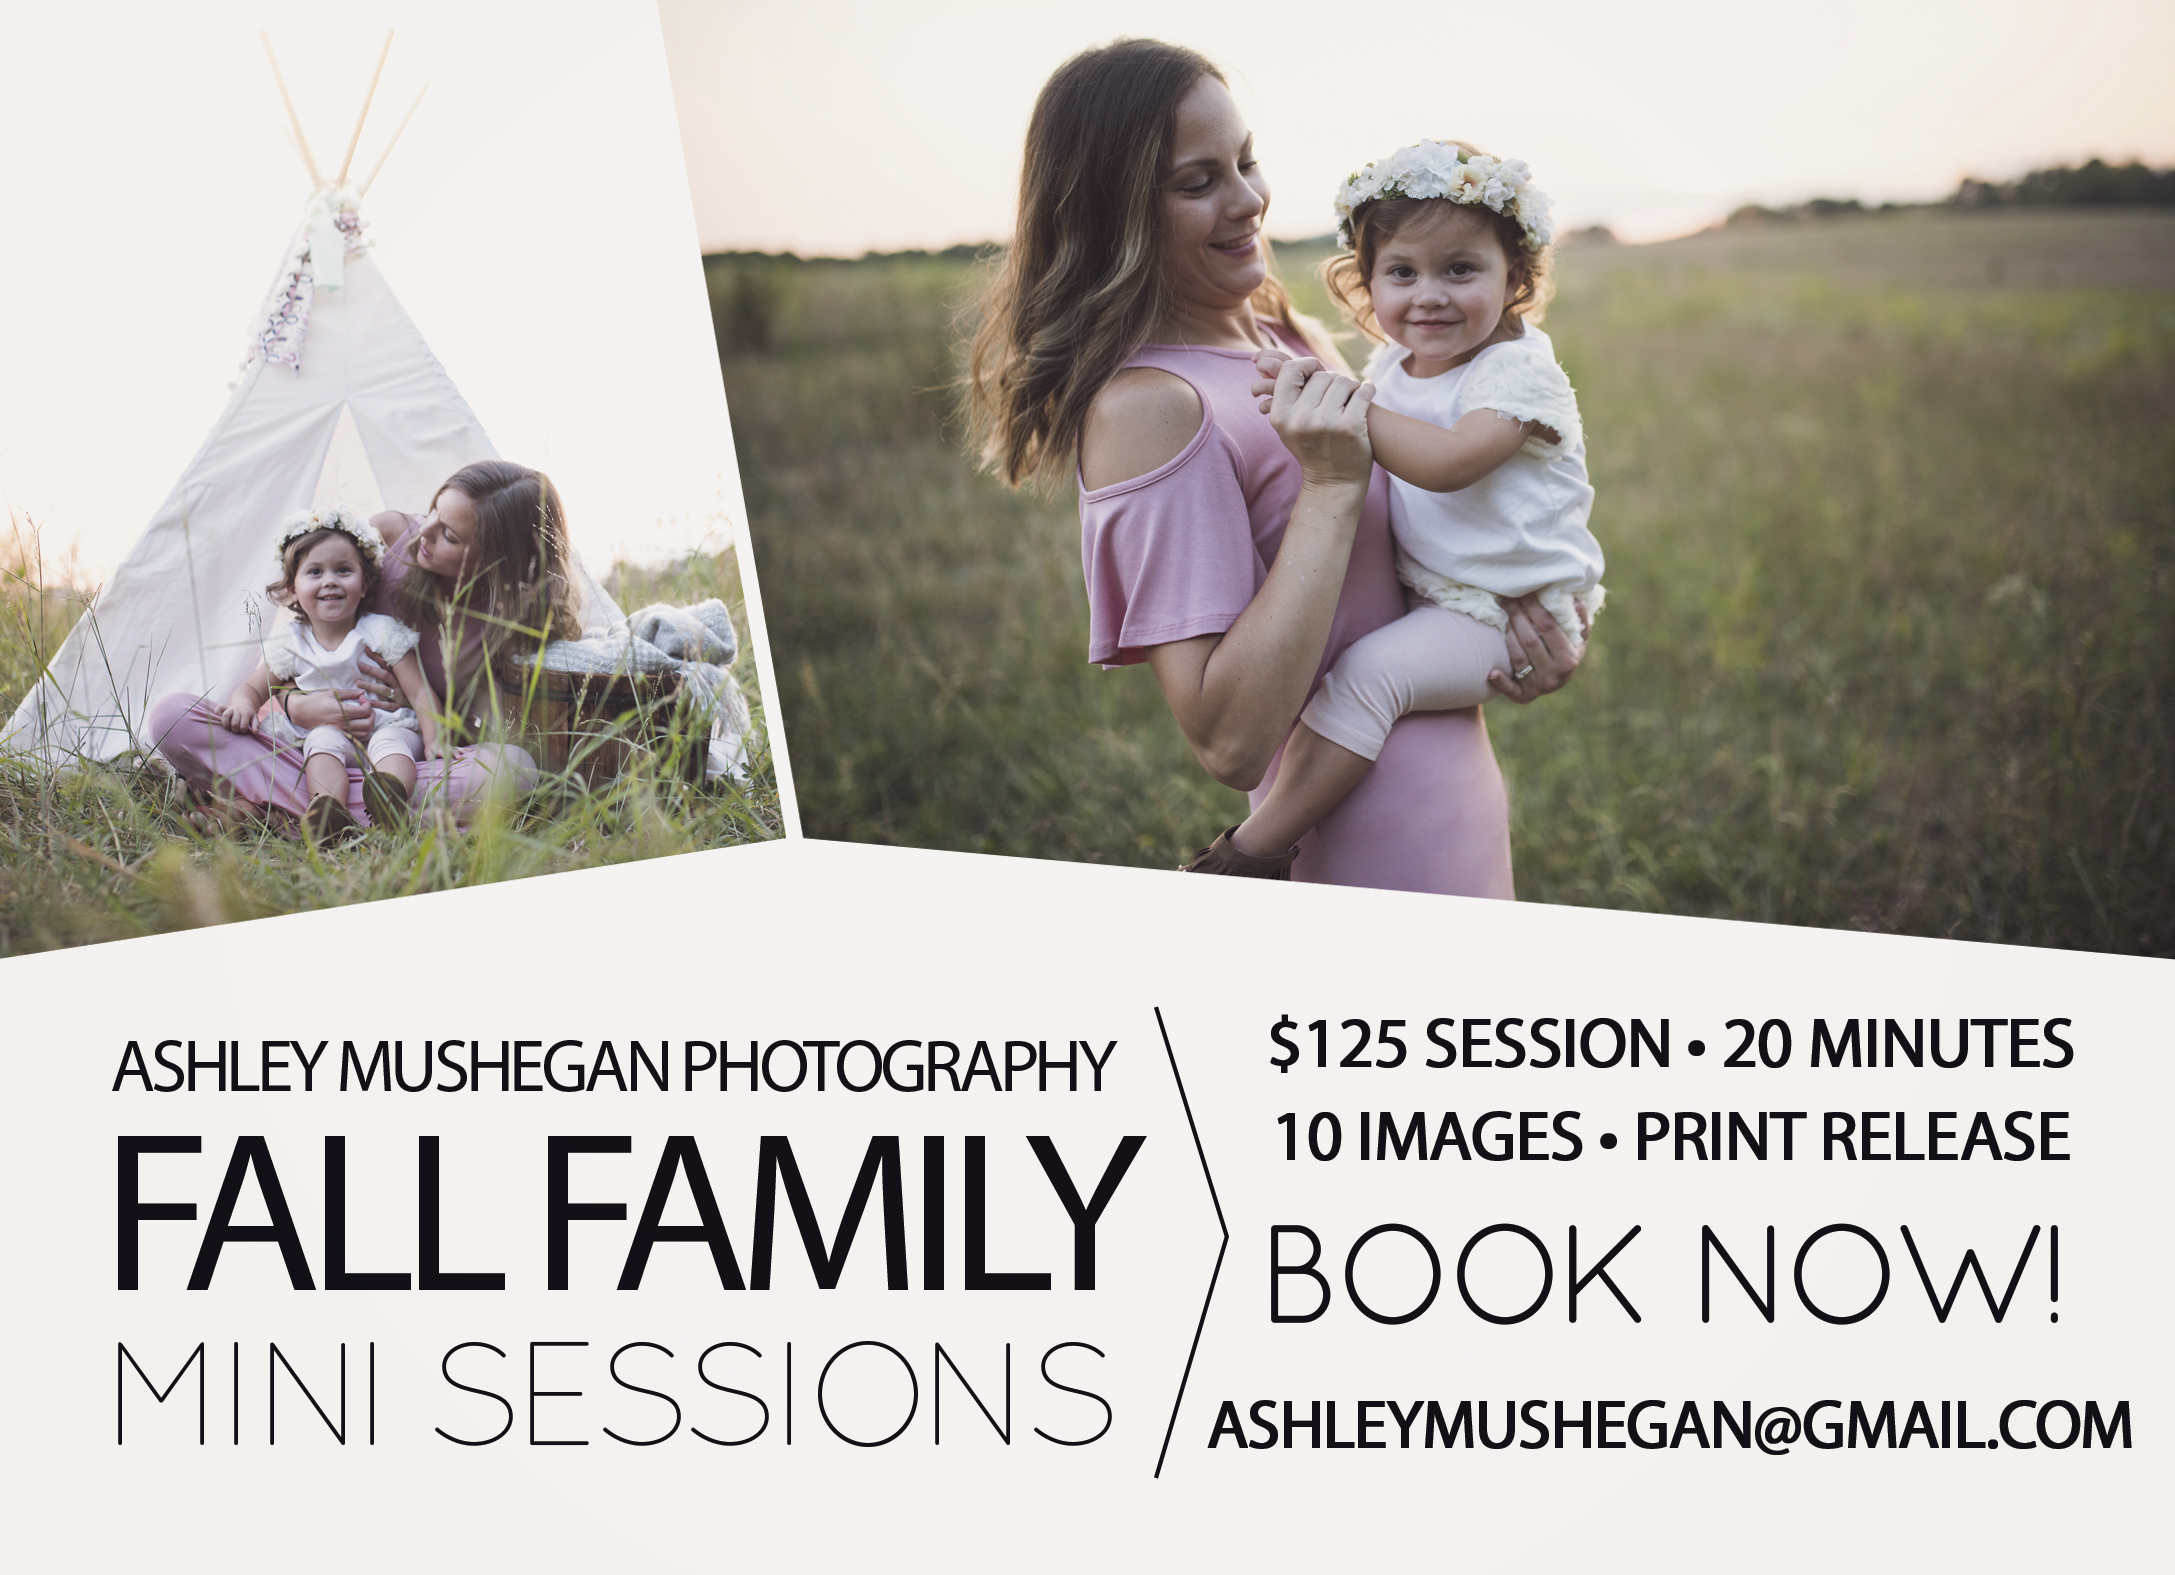 *scroll down for more images of this session.